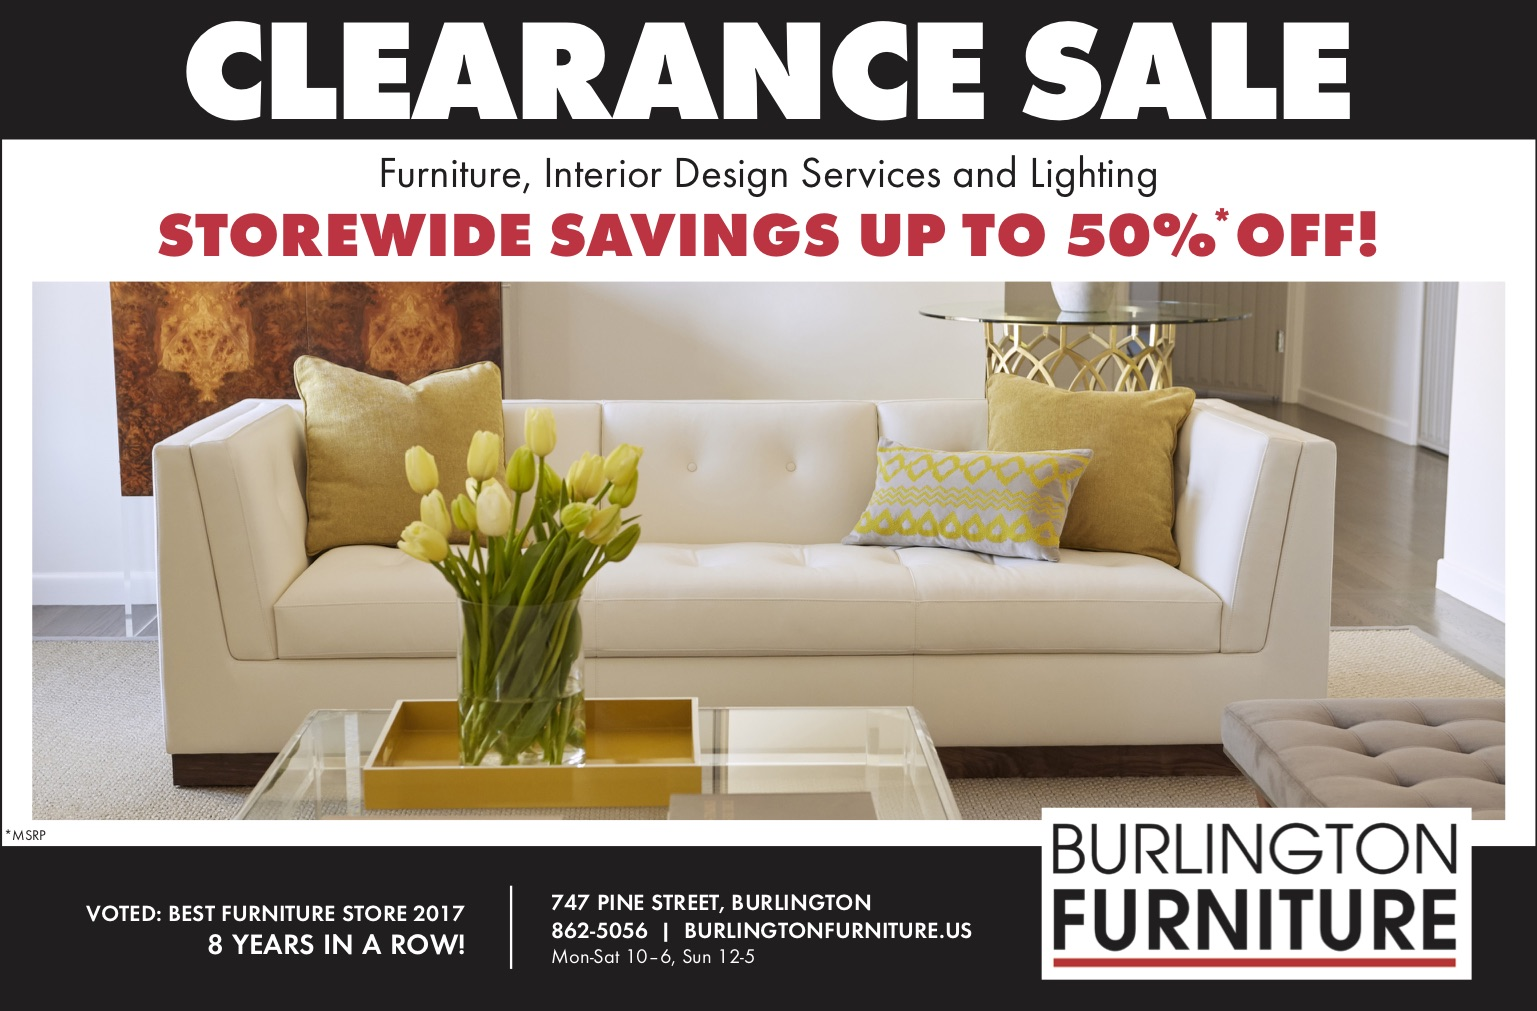 Furniture Clearance June 2018 Burlington Furniture